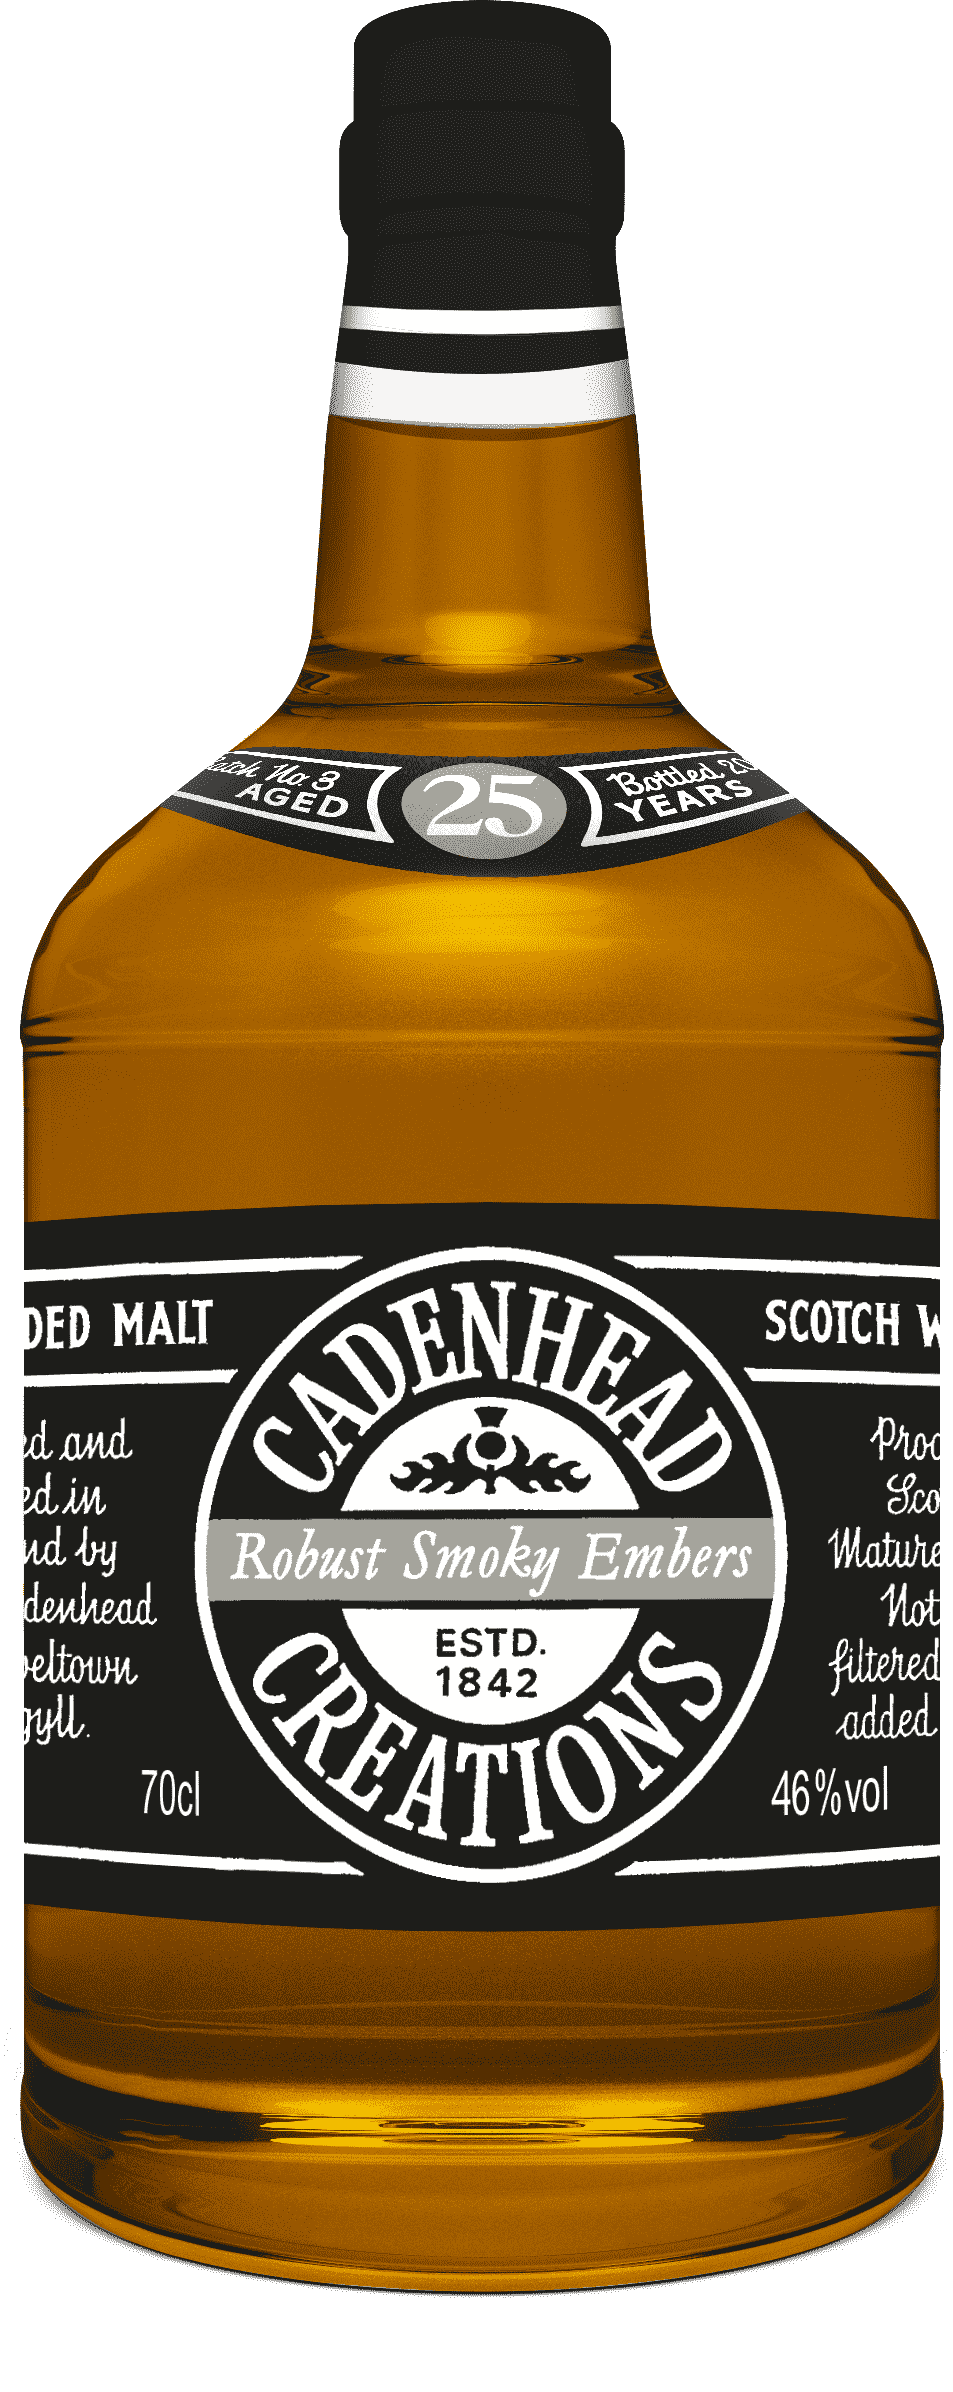 A Bottle of Cadenhead-Creations-Smoky